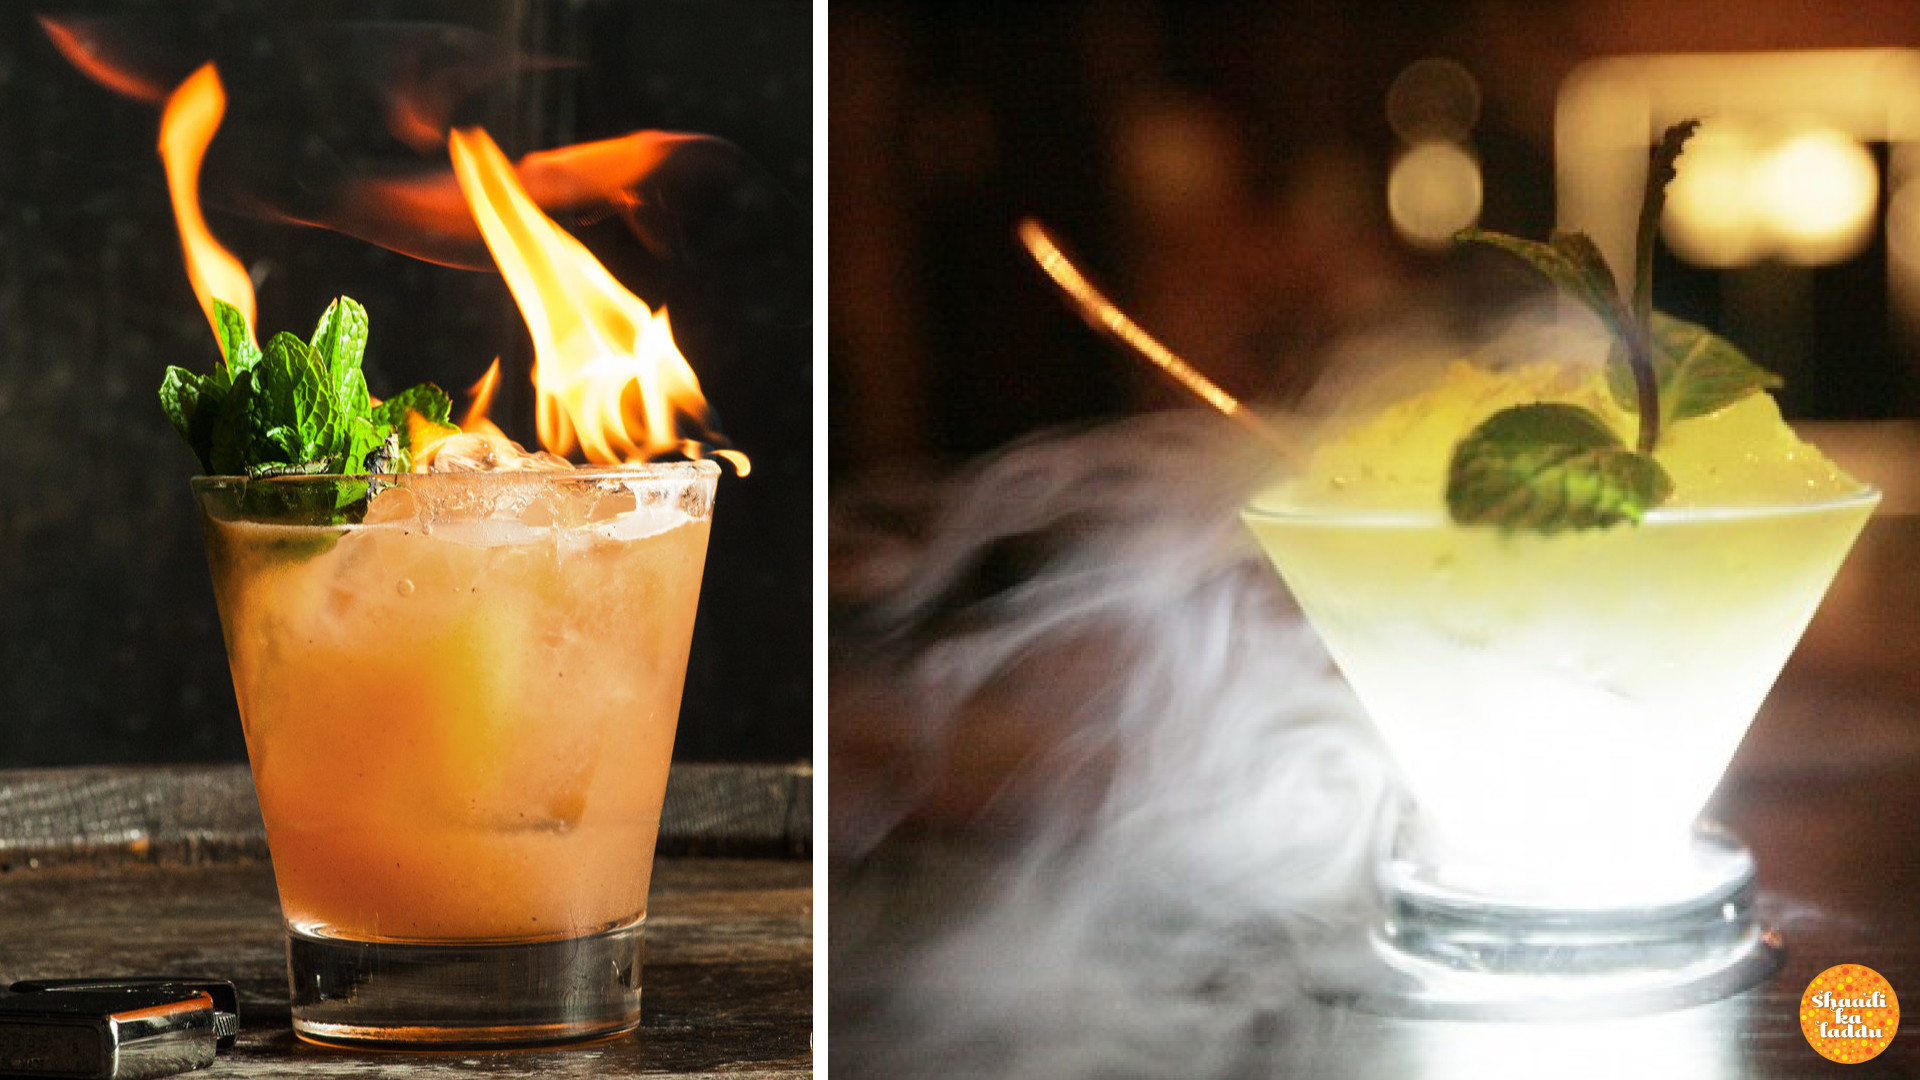 A little liquid nitrogen or a flame or two in your signature cocktails can jazz up an otherwise dull gathering